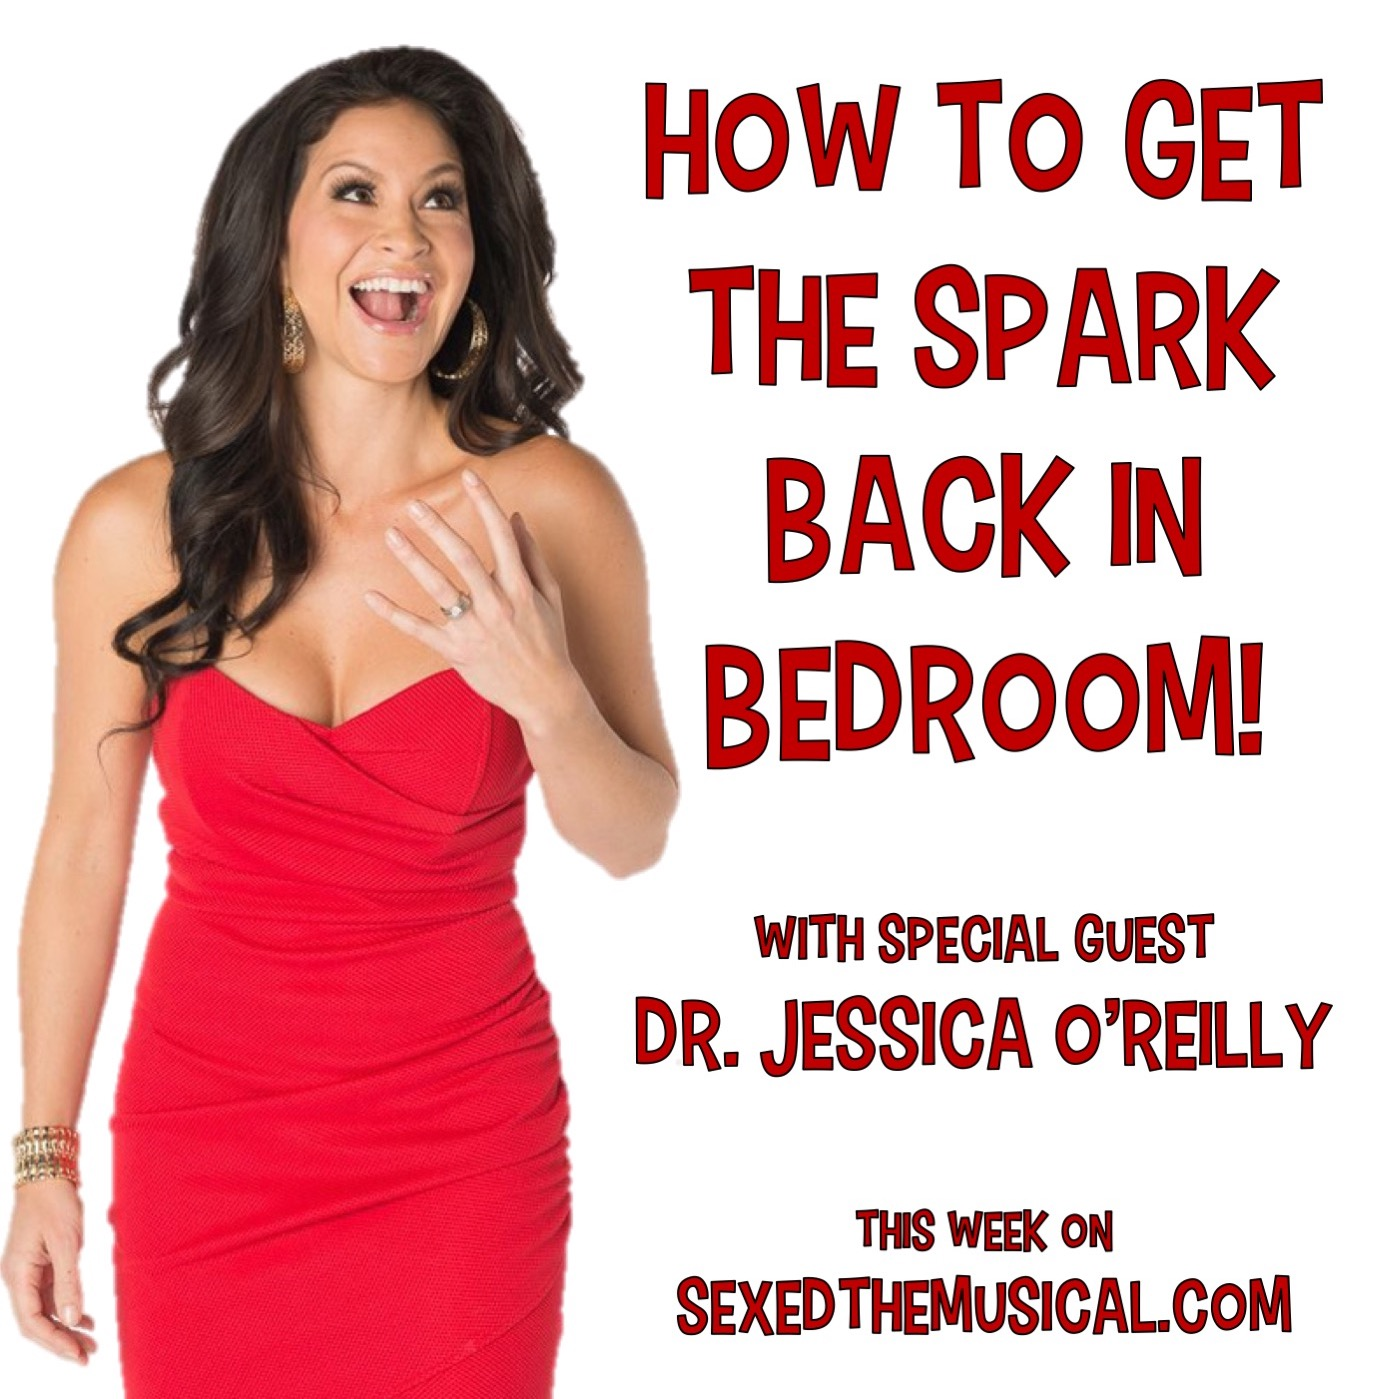 HOW TO GET THE SPARK BACK IN YOUR BEDROOM with DR. JESSICA O'REILLY